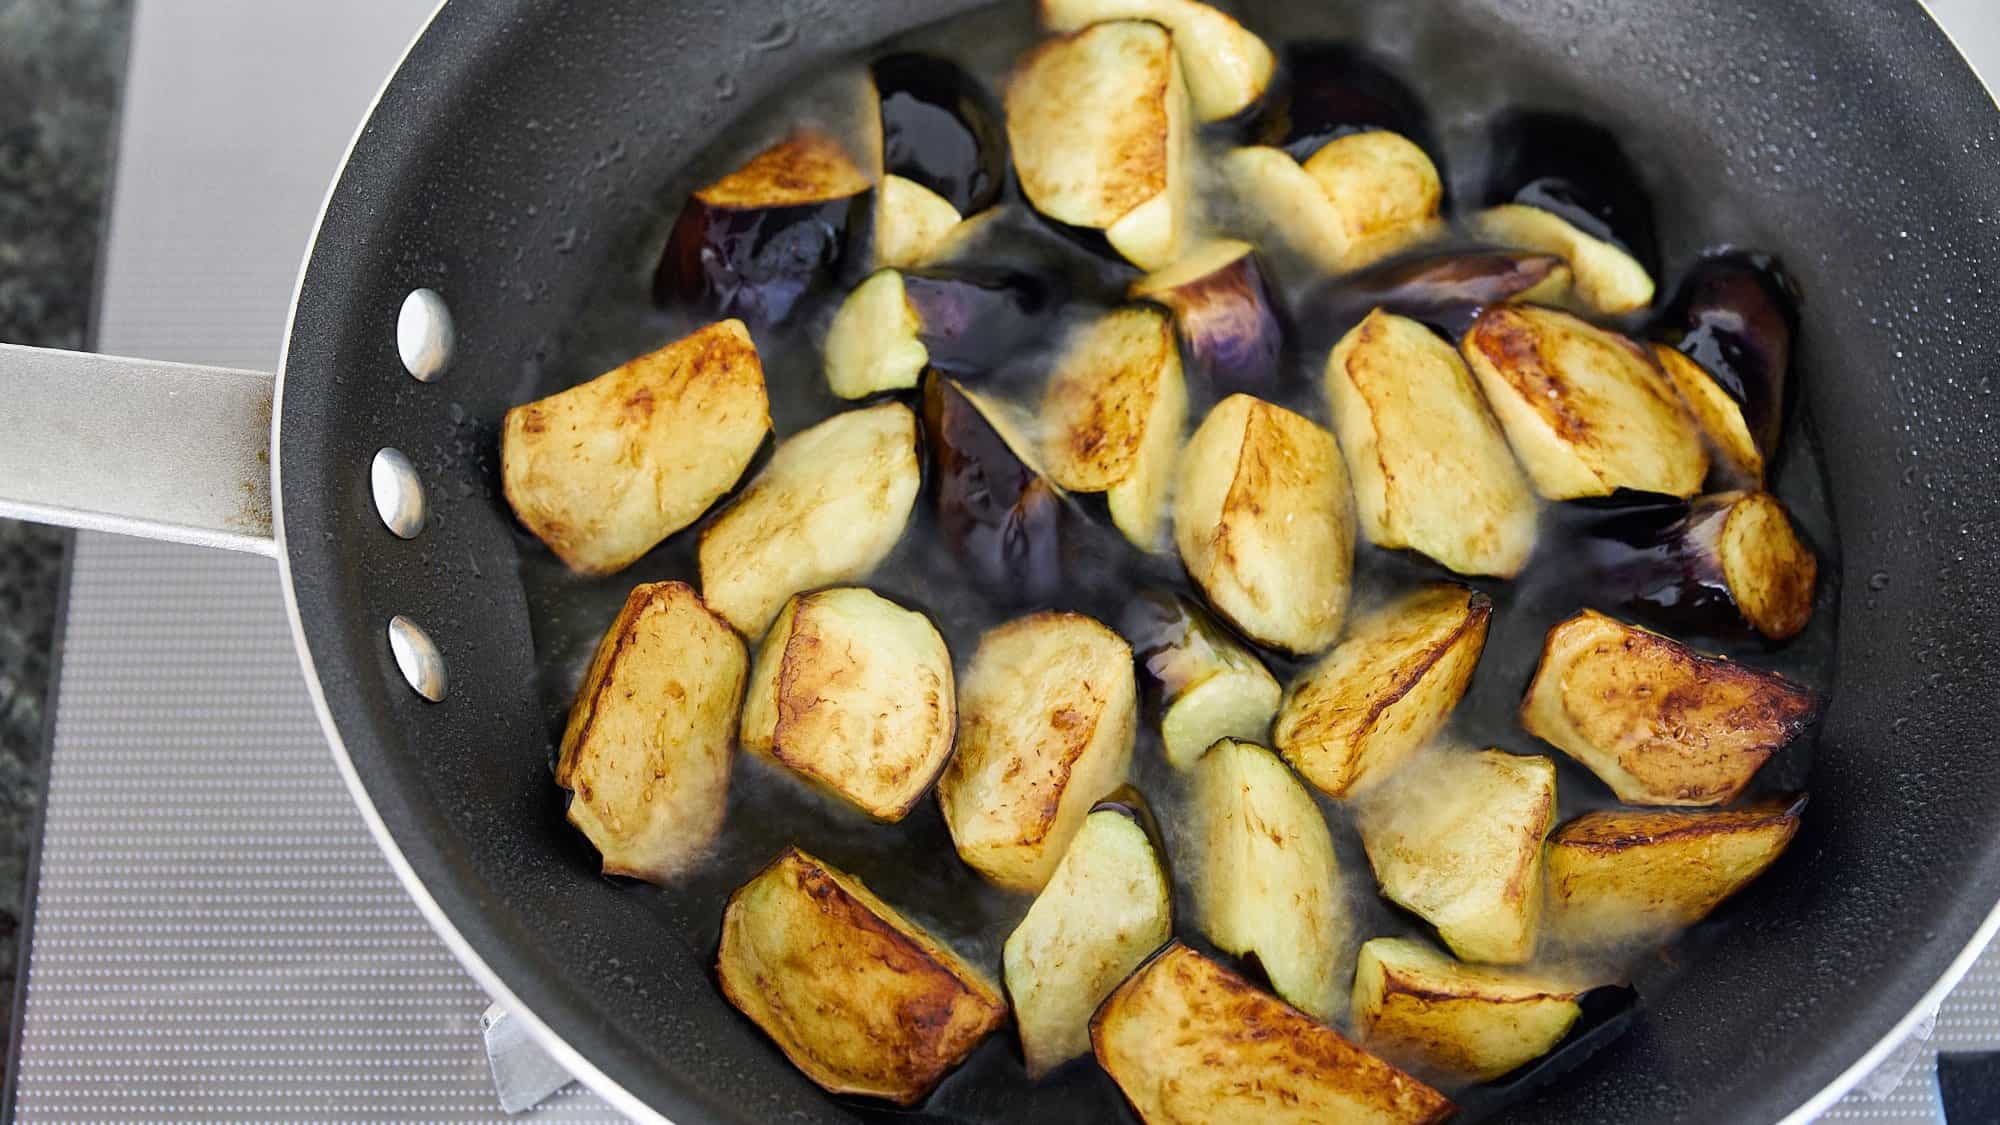 Shallow frying the eggplant for the Caponata in olive oil ensures they're both flavorful and tender.